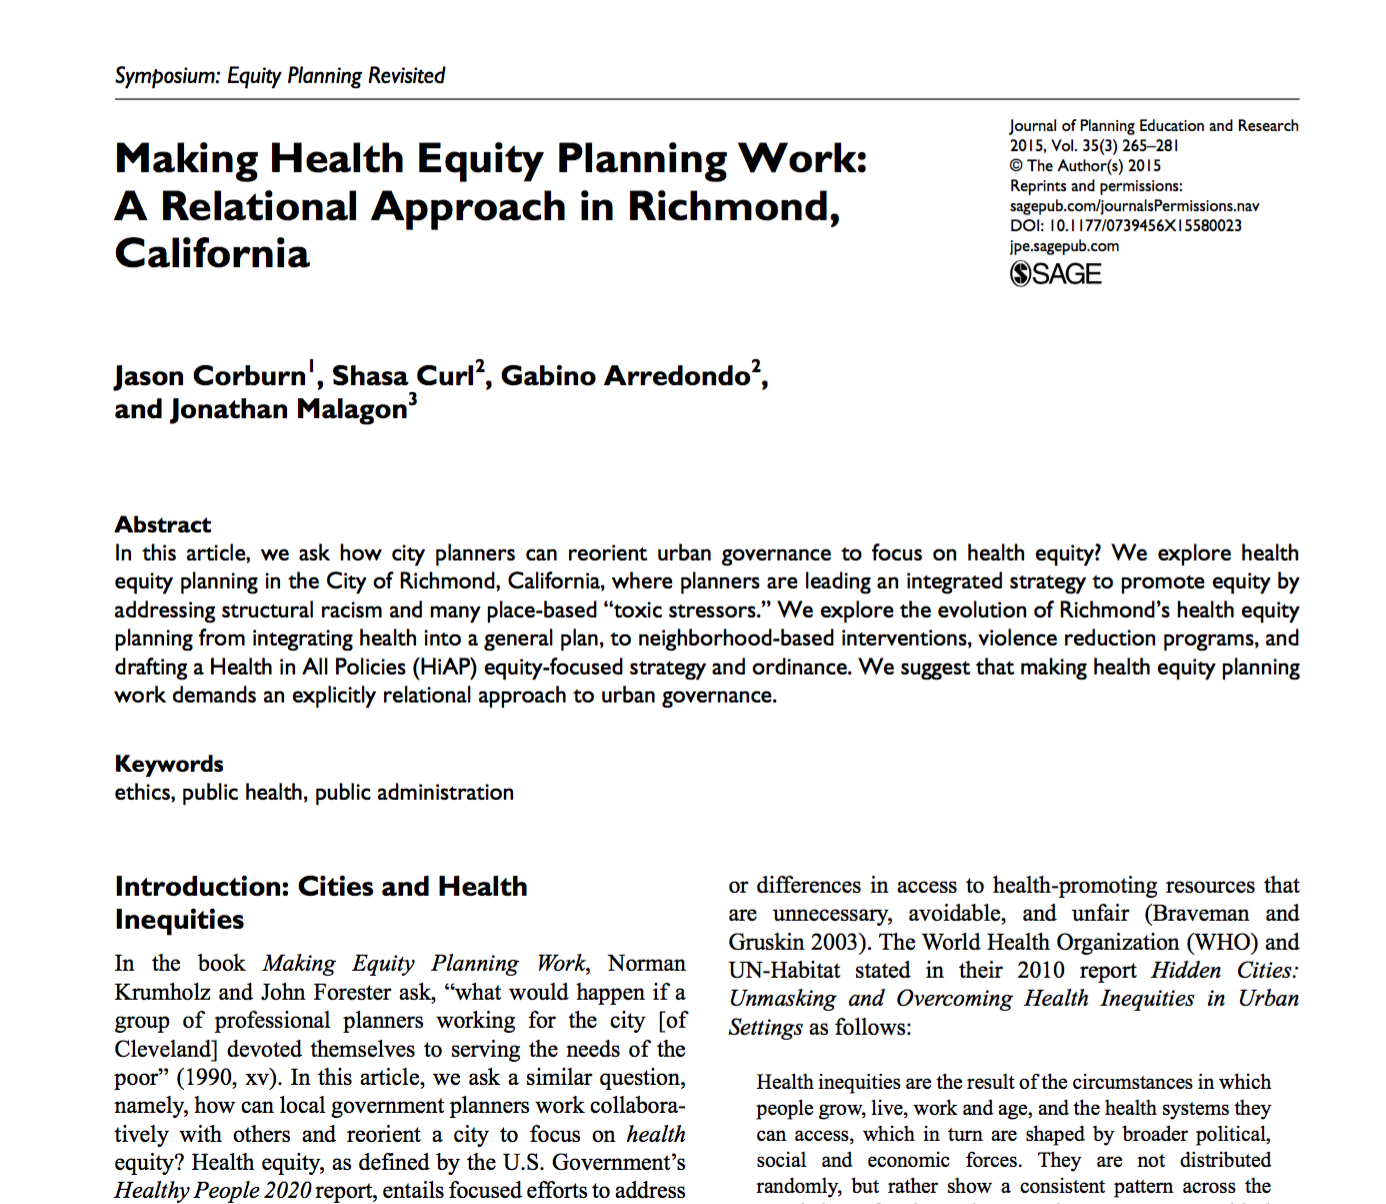 Making Health Equity Planning Work: A Relational Approach in Richmond, California